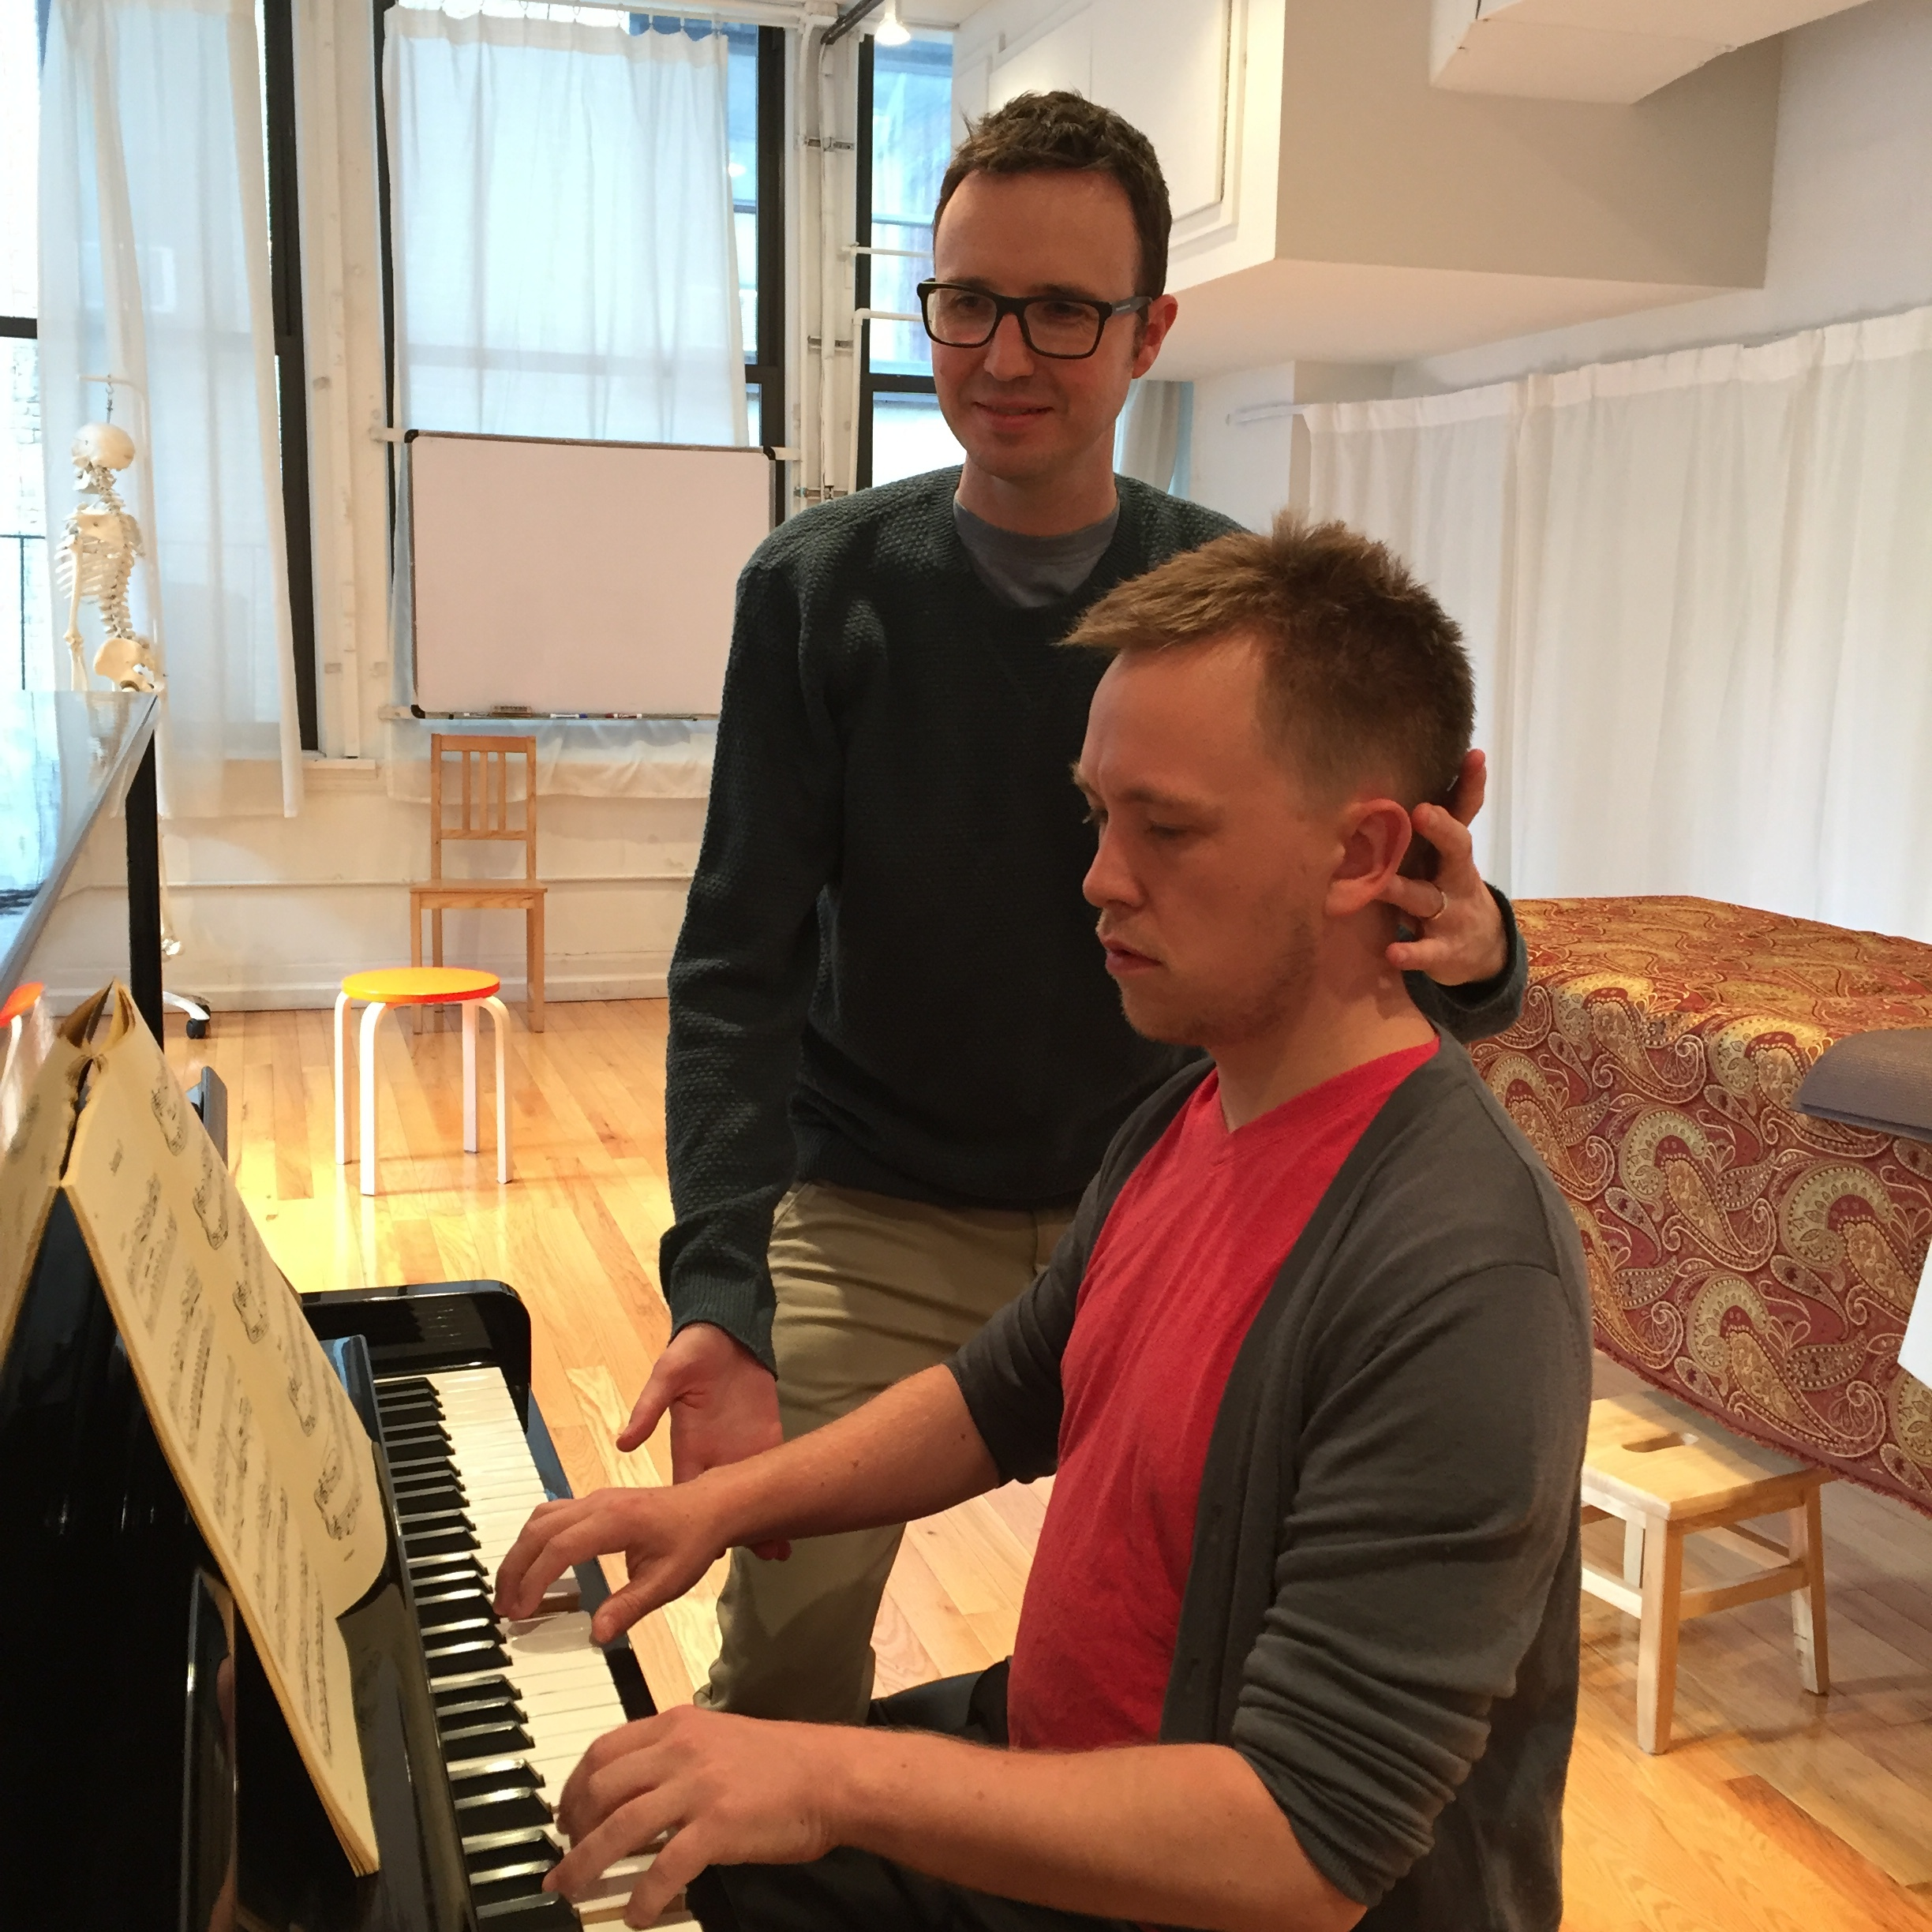 Helping a pianist discover efficiency and ease in his technique.